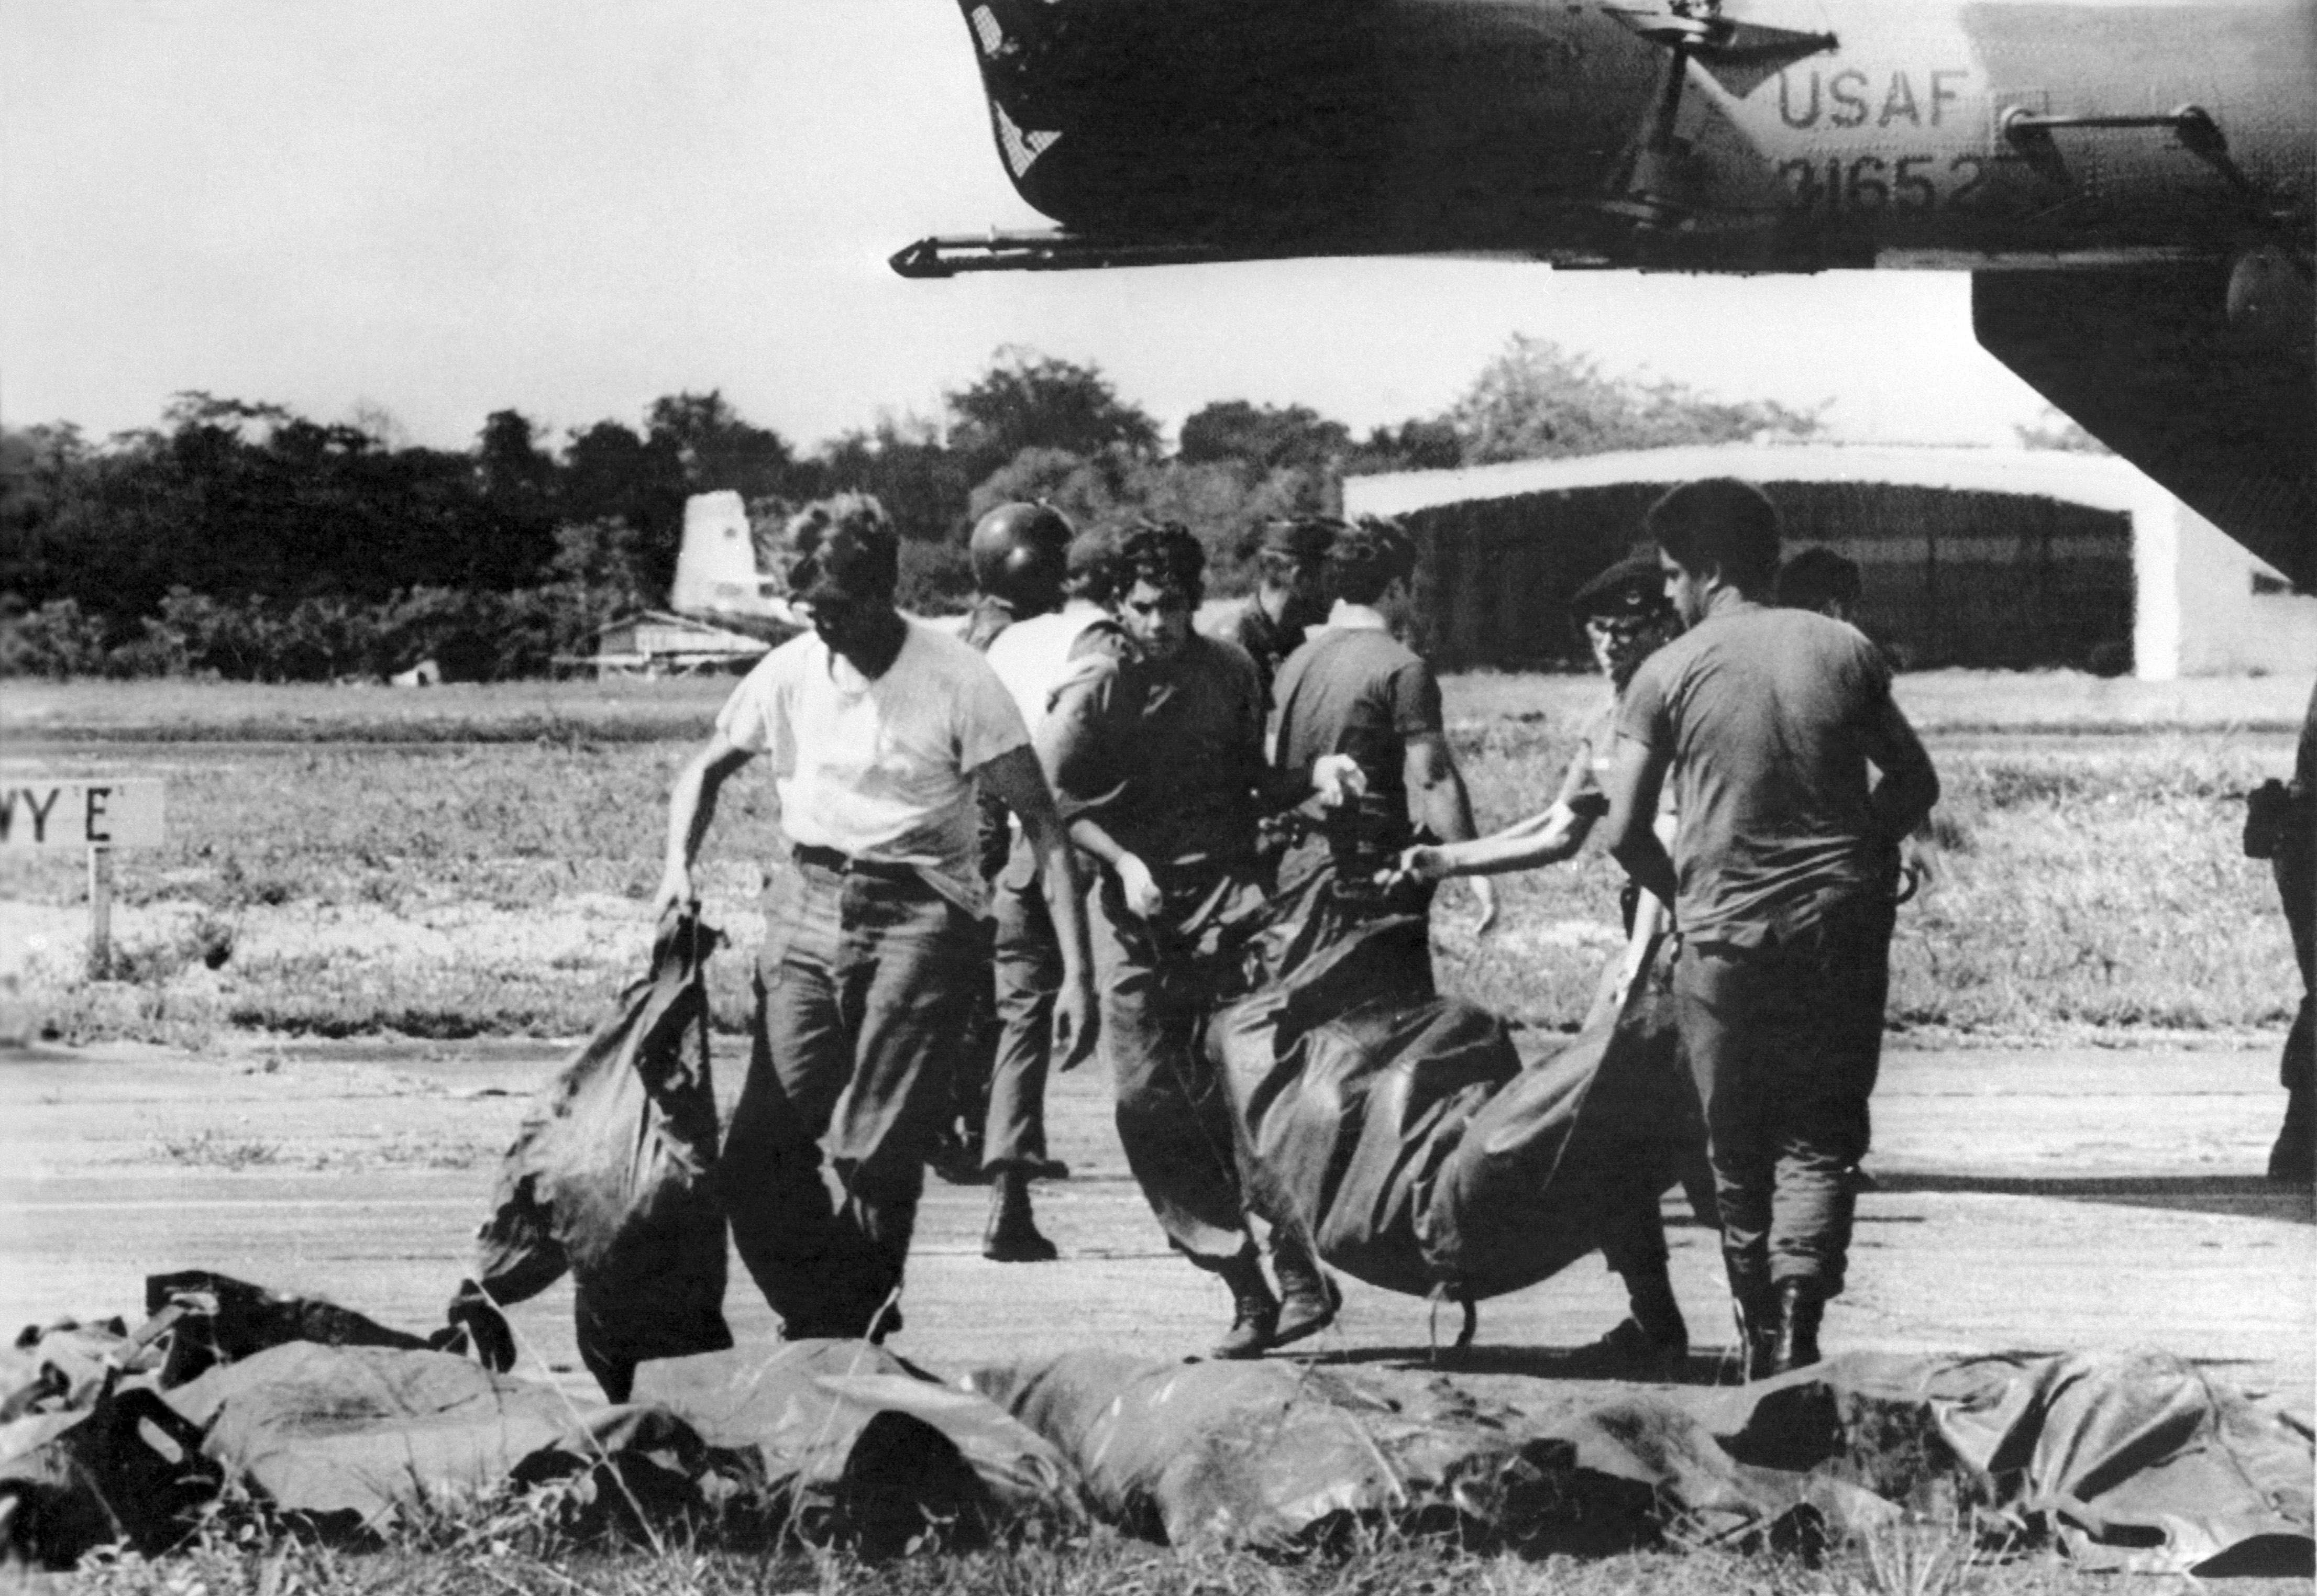 U.S. military personnel remove bags containing bodies in the mass Jonestown suicide in November 1978 in Guyana. (AFP/Getty Images)